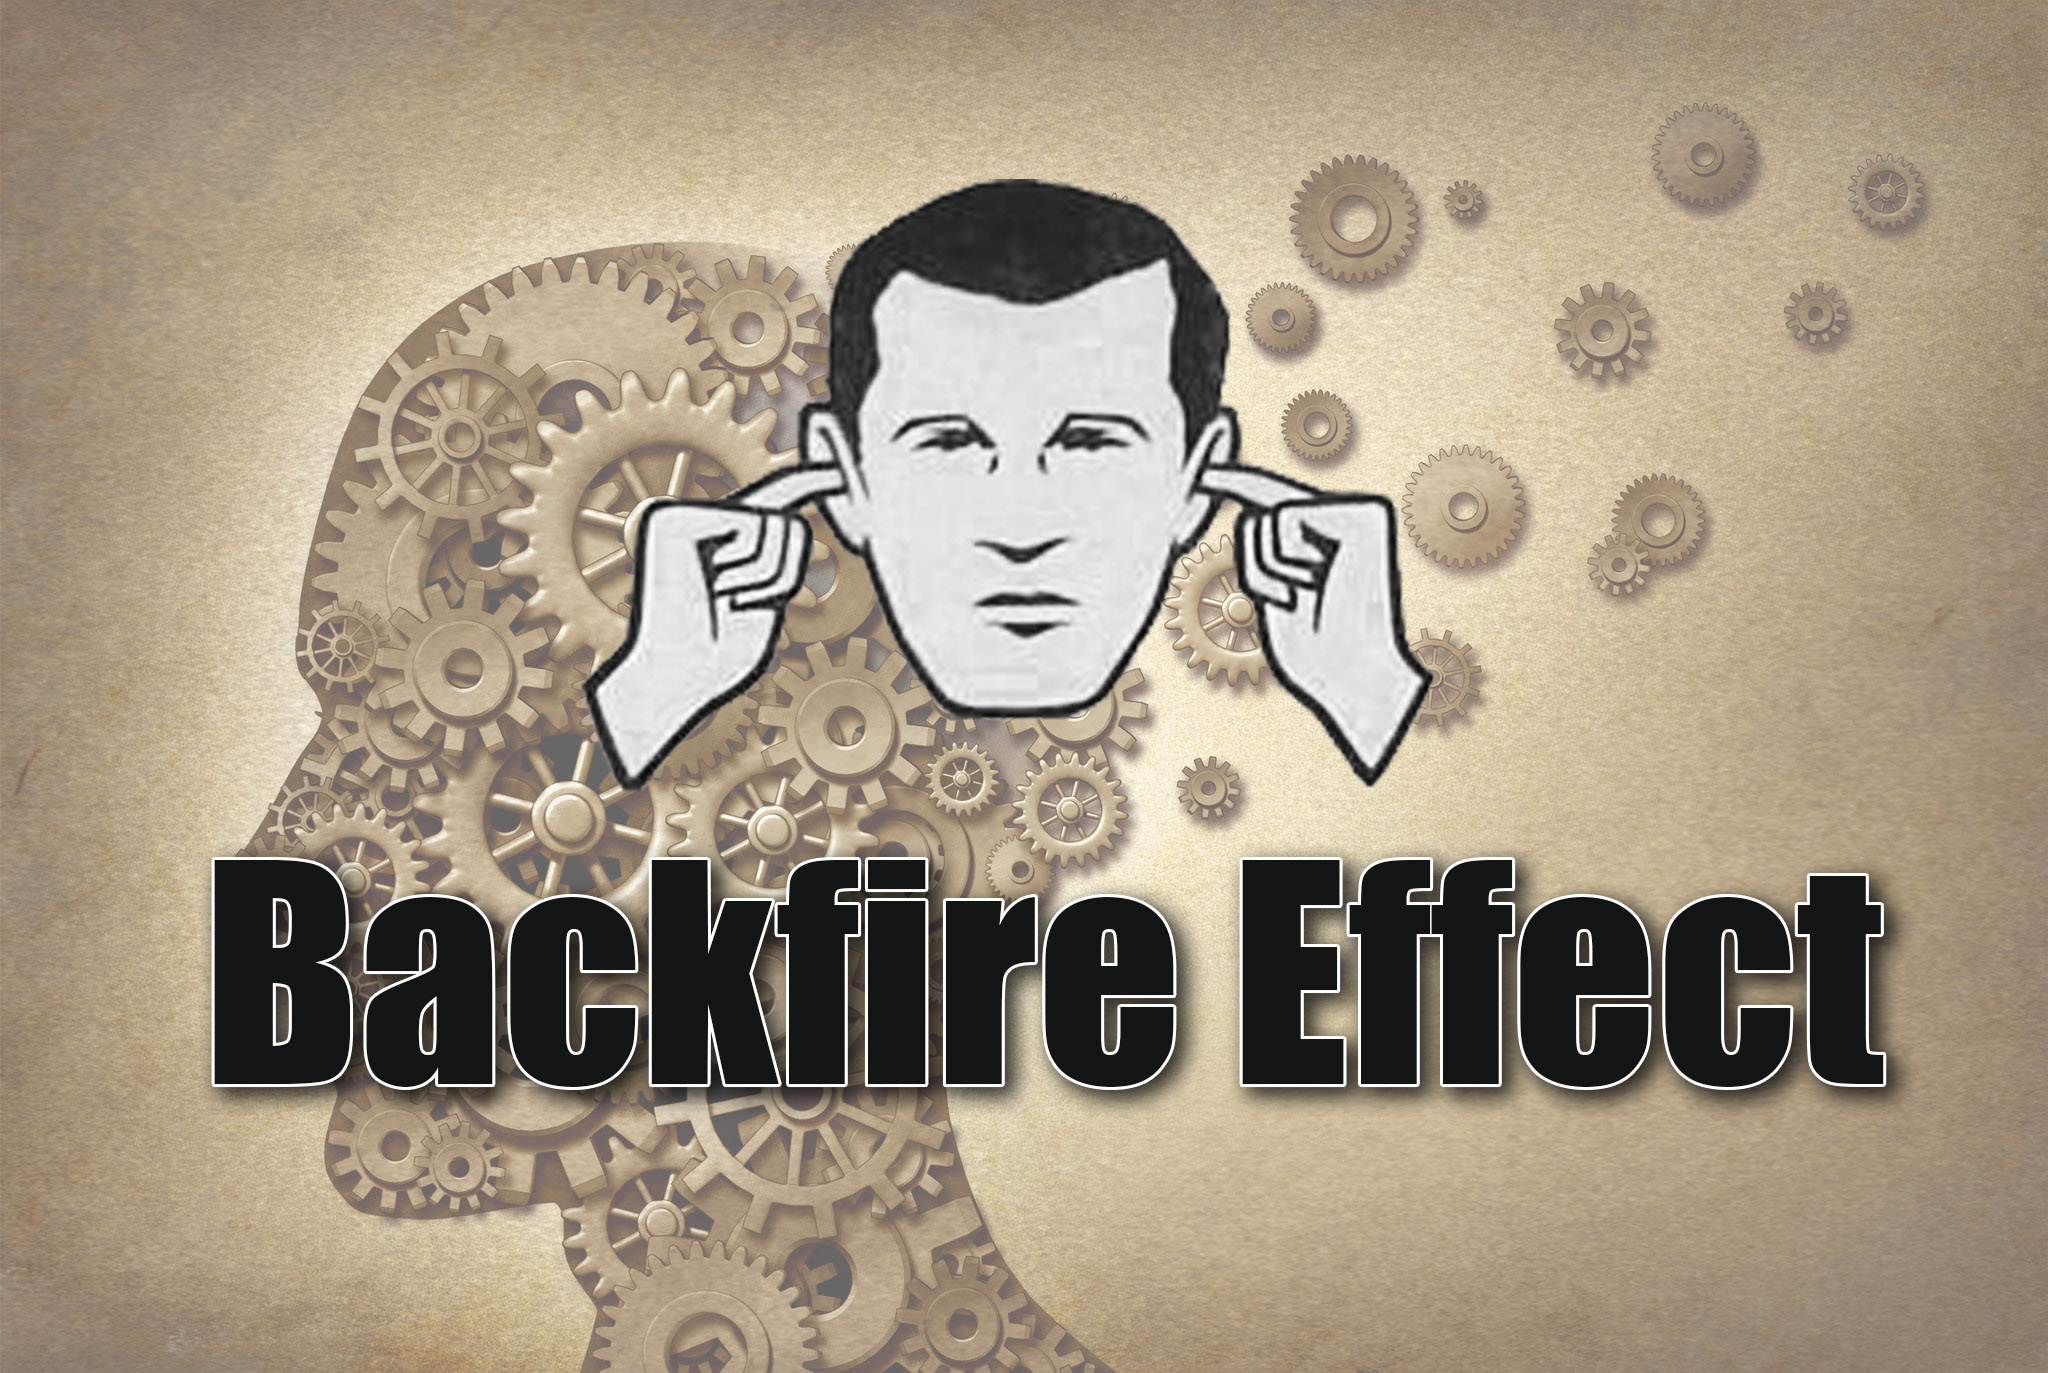 how to avoid backfire effect